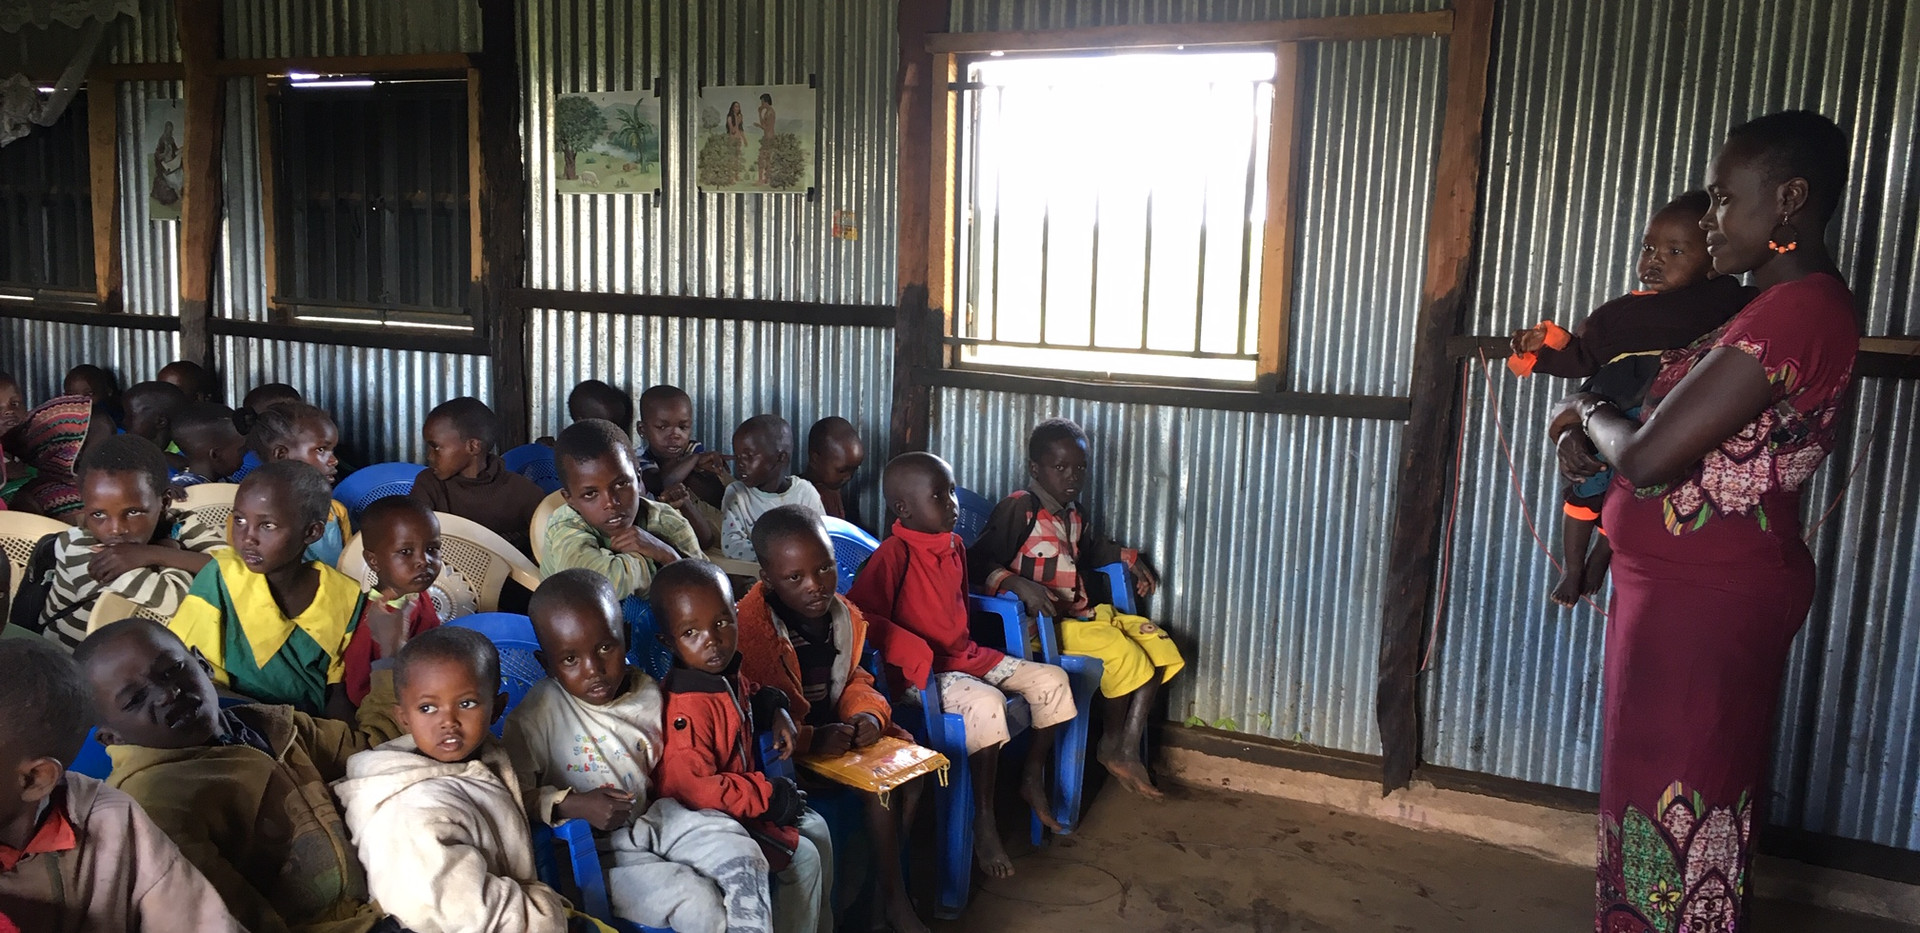 Steria desperately needs Montessori training to help her many students